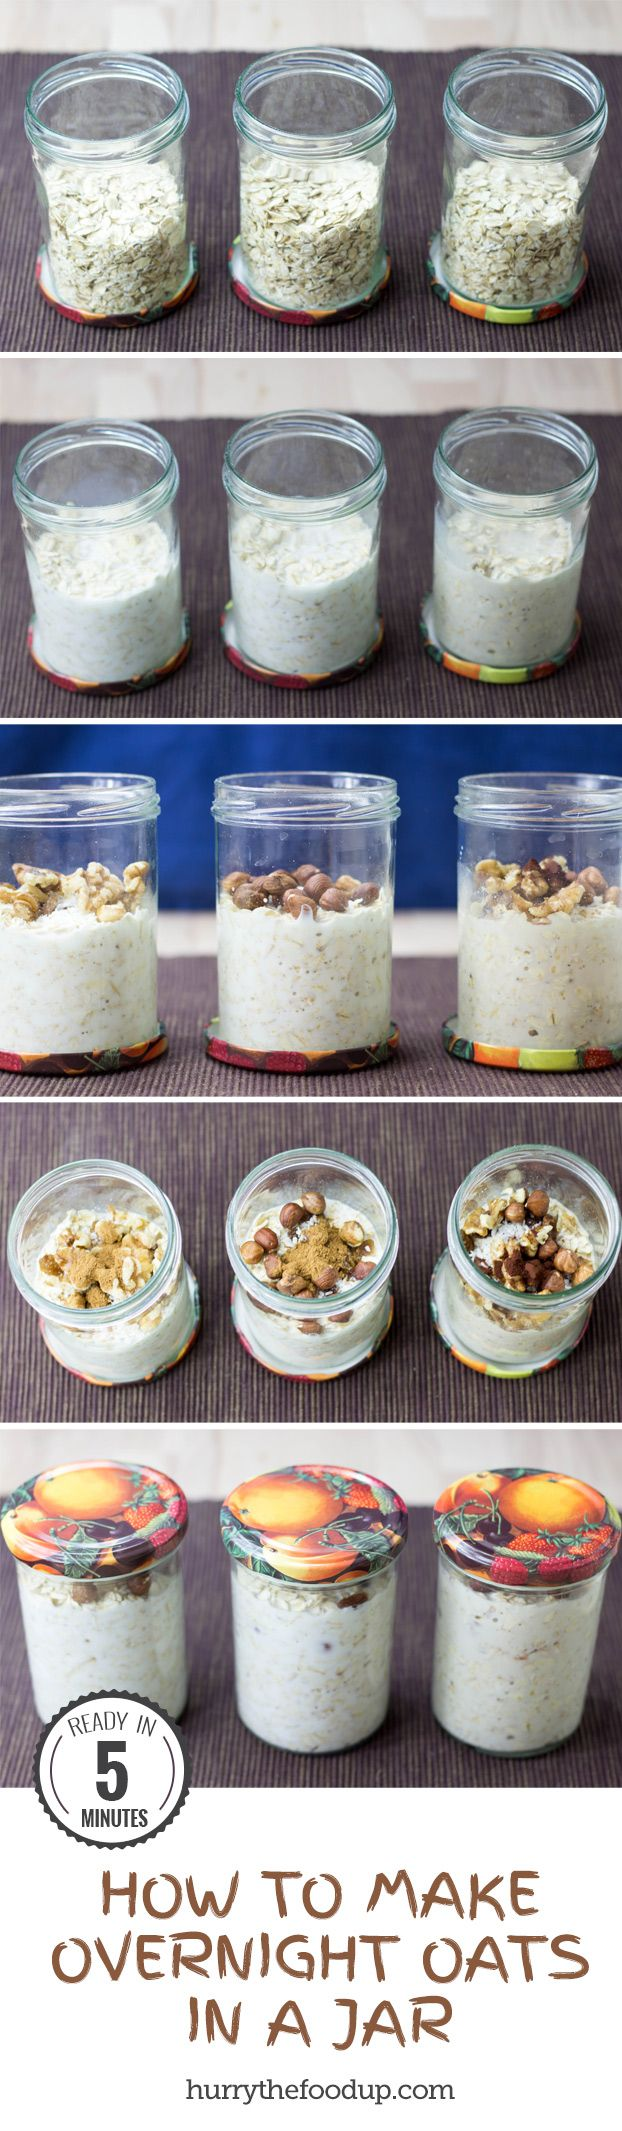 How To Make Overnight Oats in a Jar + 28 Tasty Overnight Oats Recipes #oats #breakfast | hurrythefoodup.com